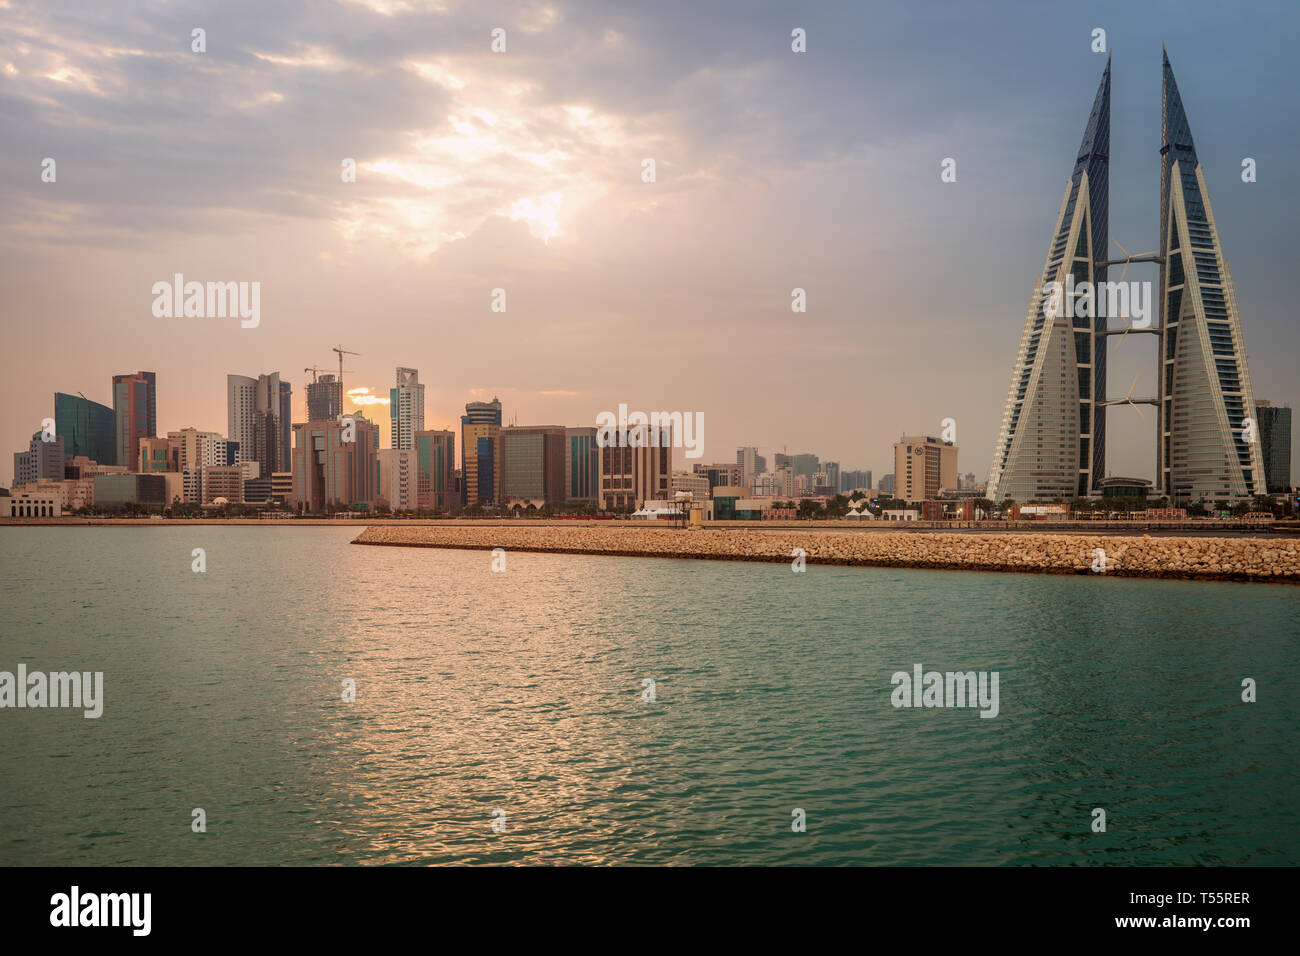 Skyline with Bahrain World Trade Center in Manama, Bahrain - Stock Image